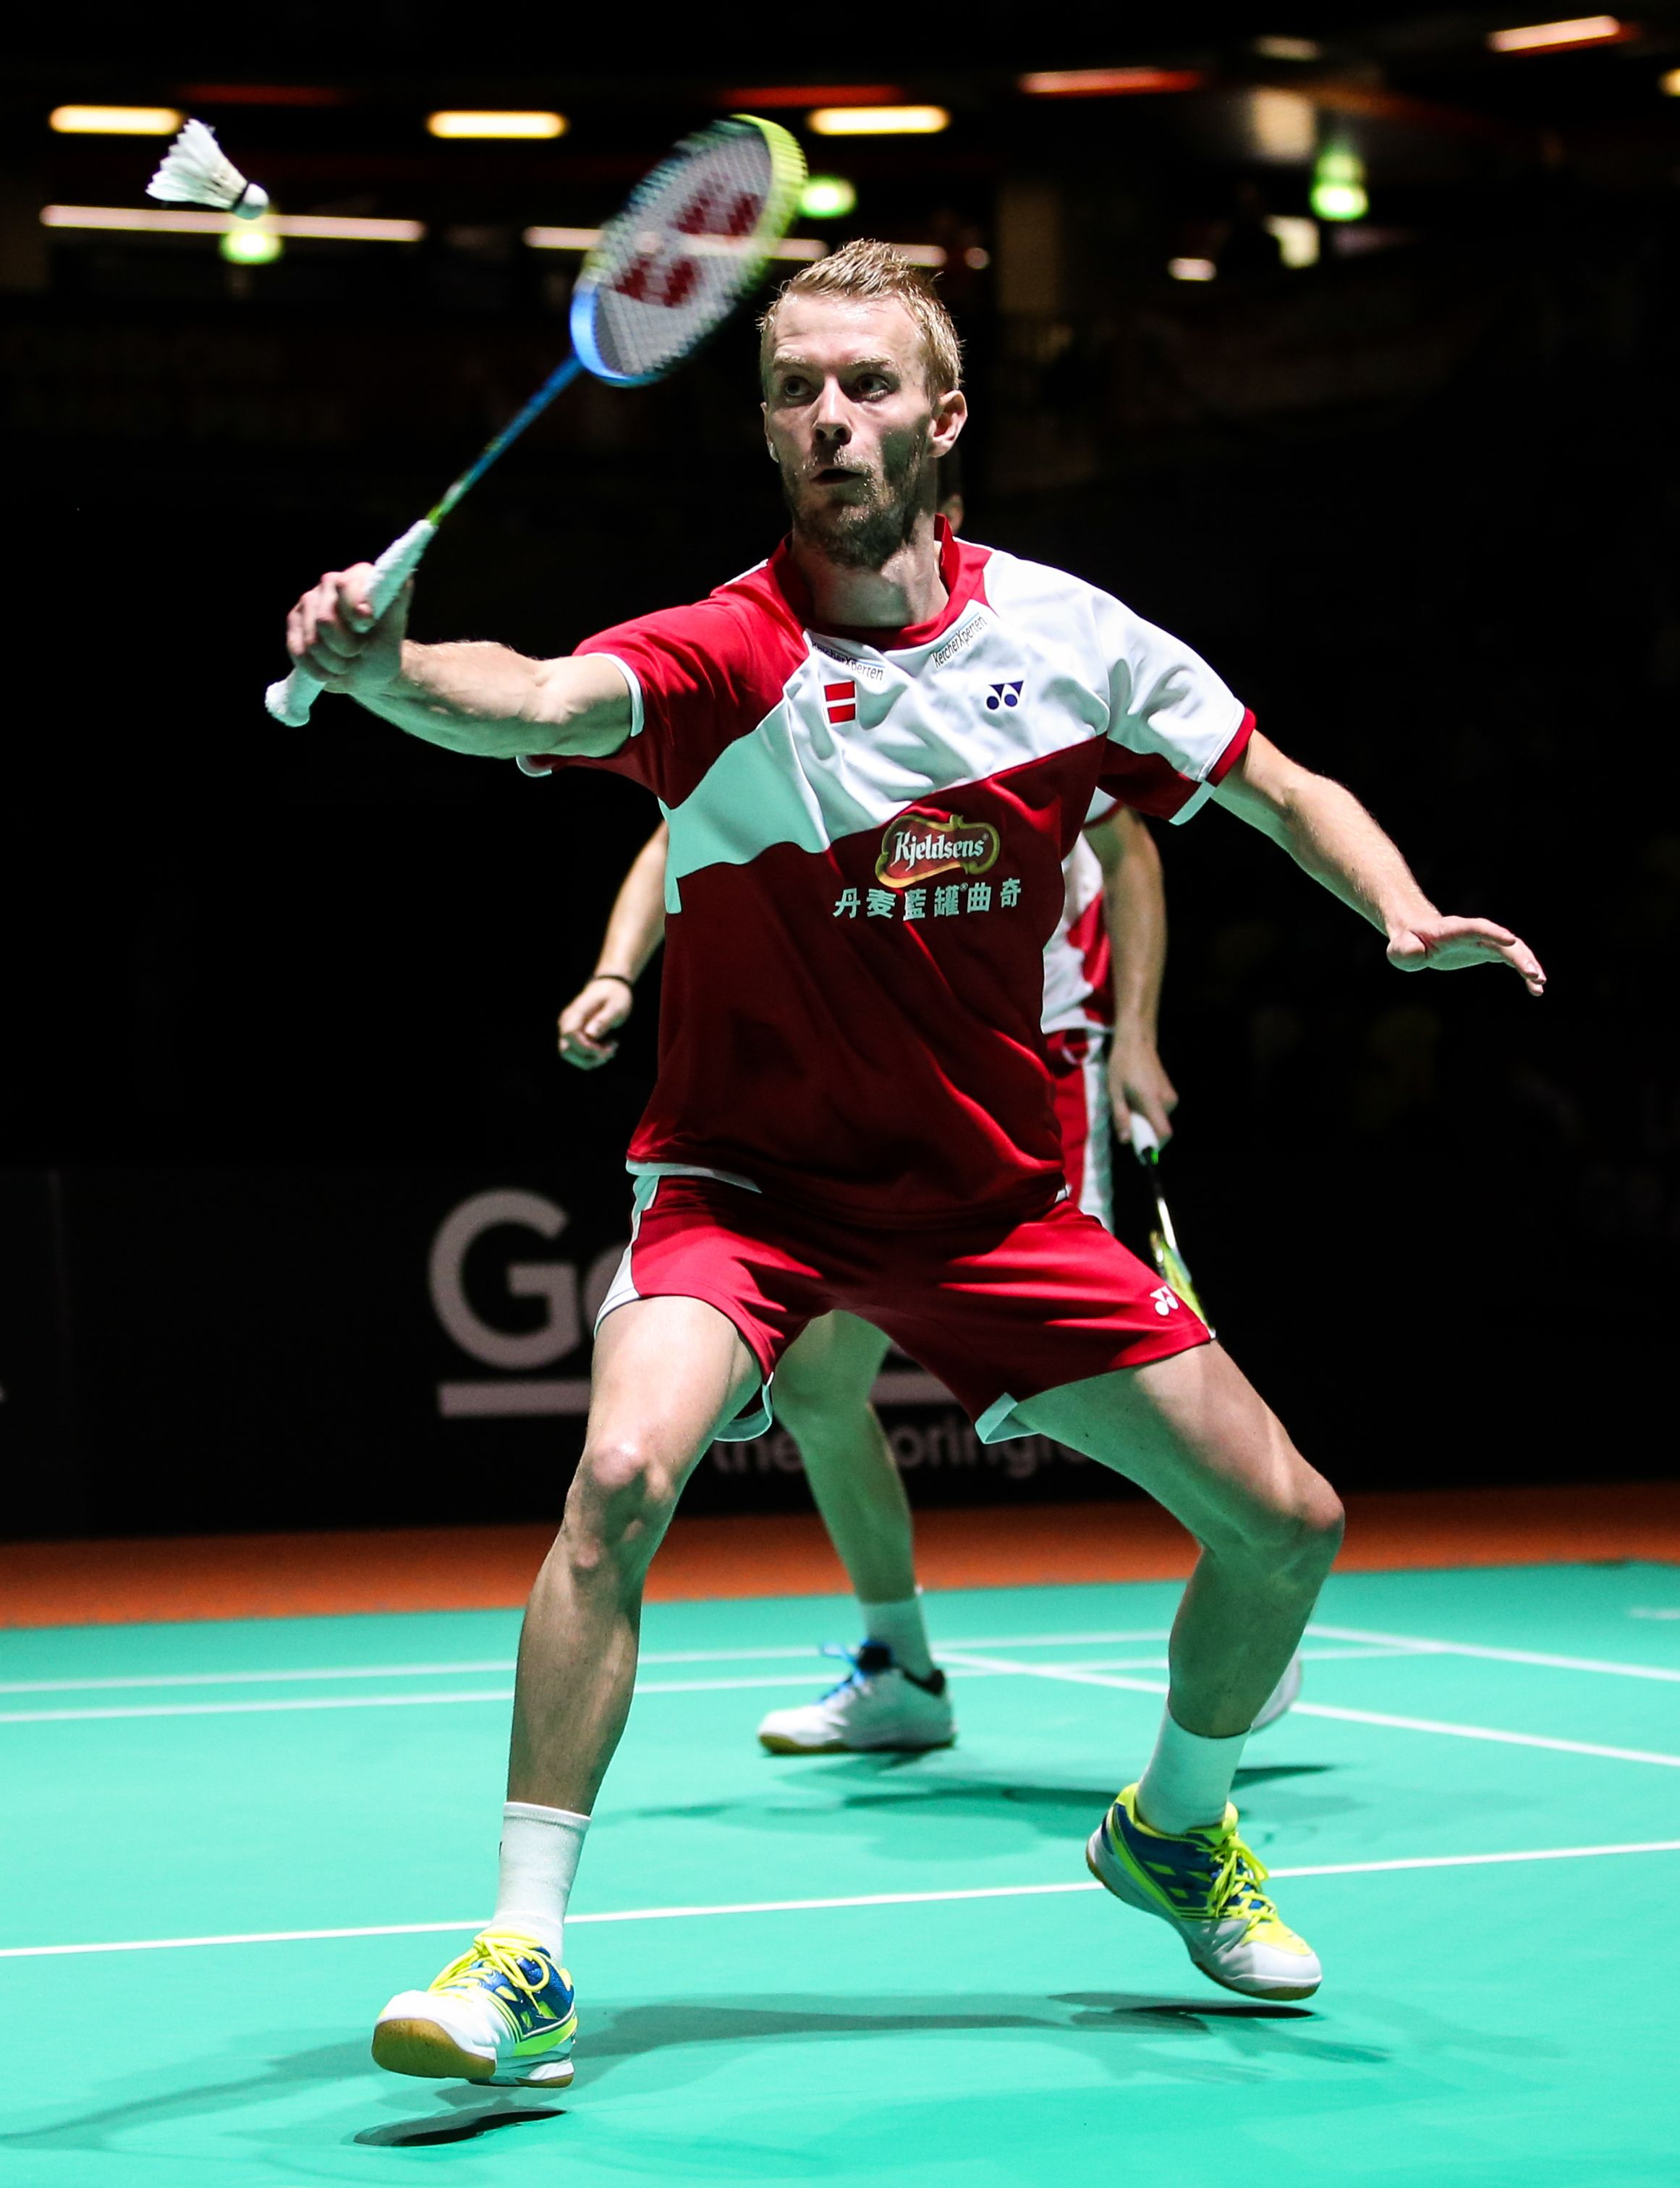 Carsten Mogensen ARCSABER FB plays a match in the London GPG